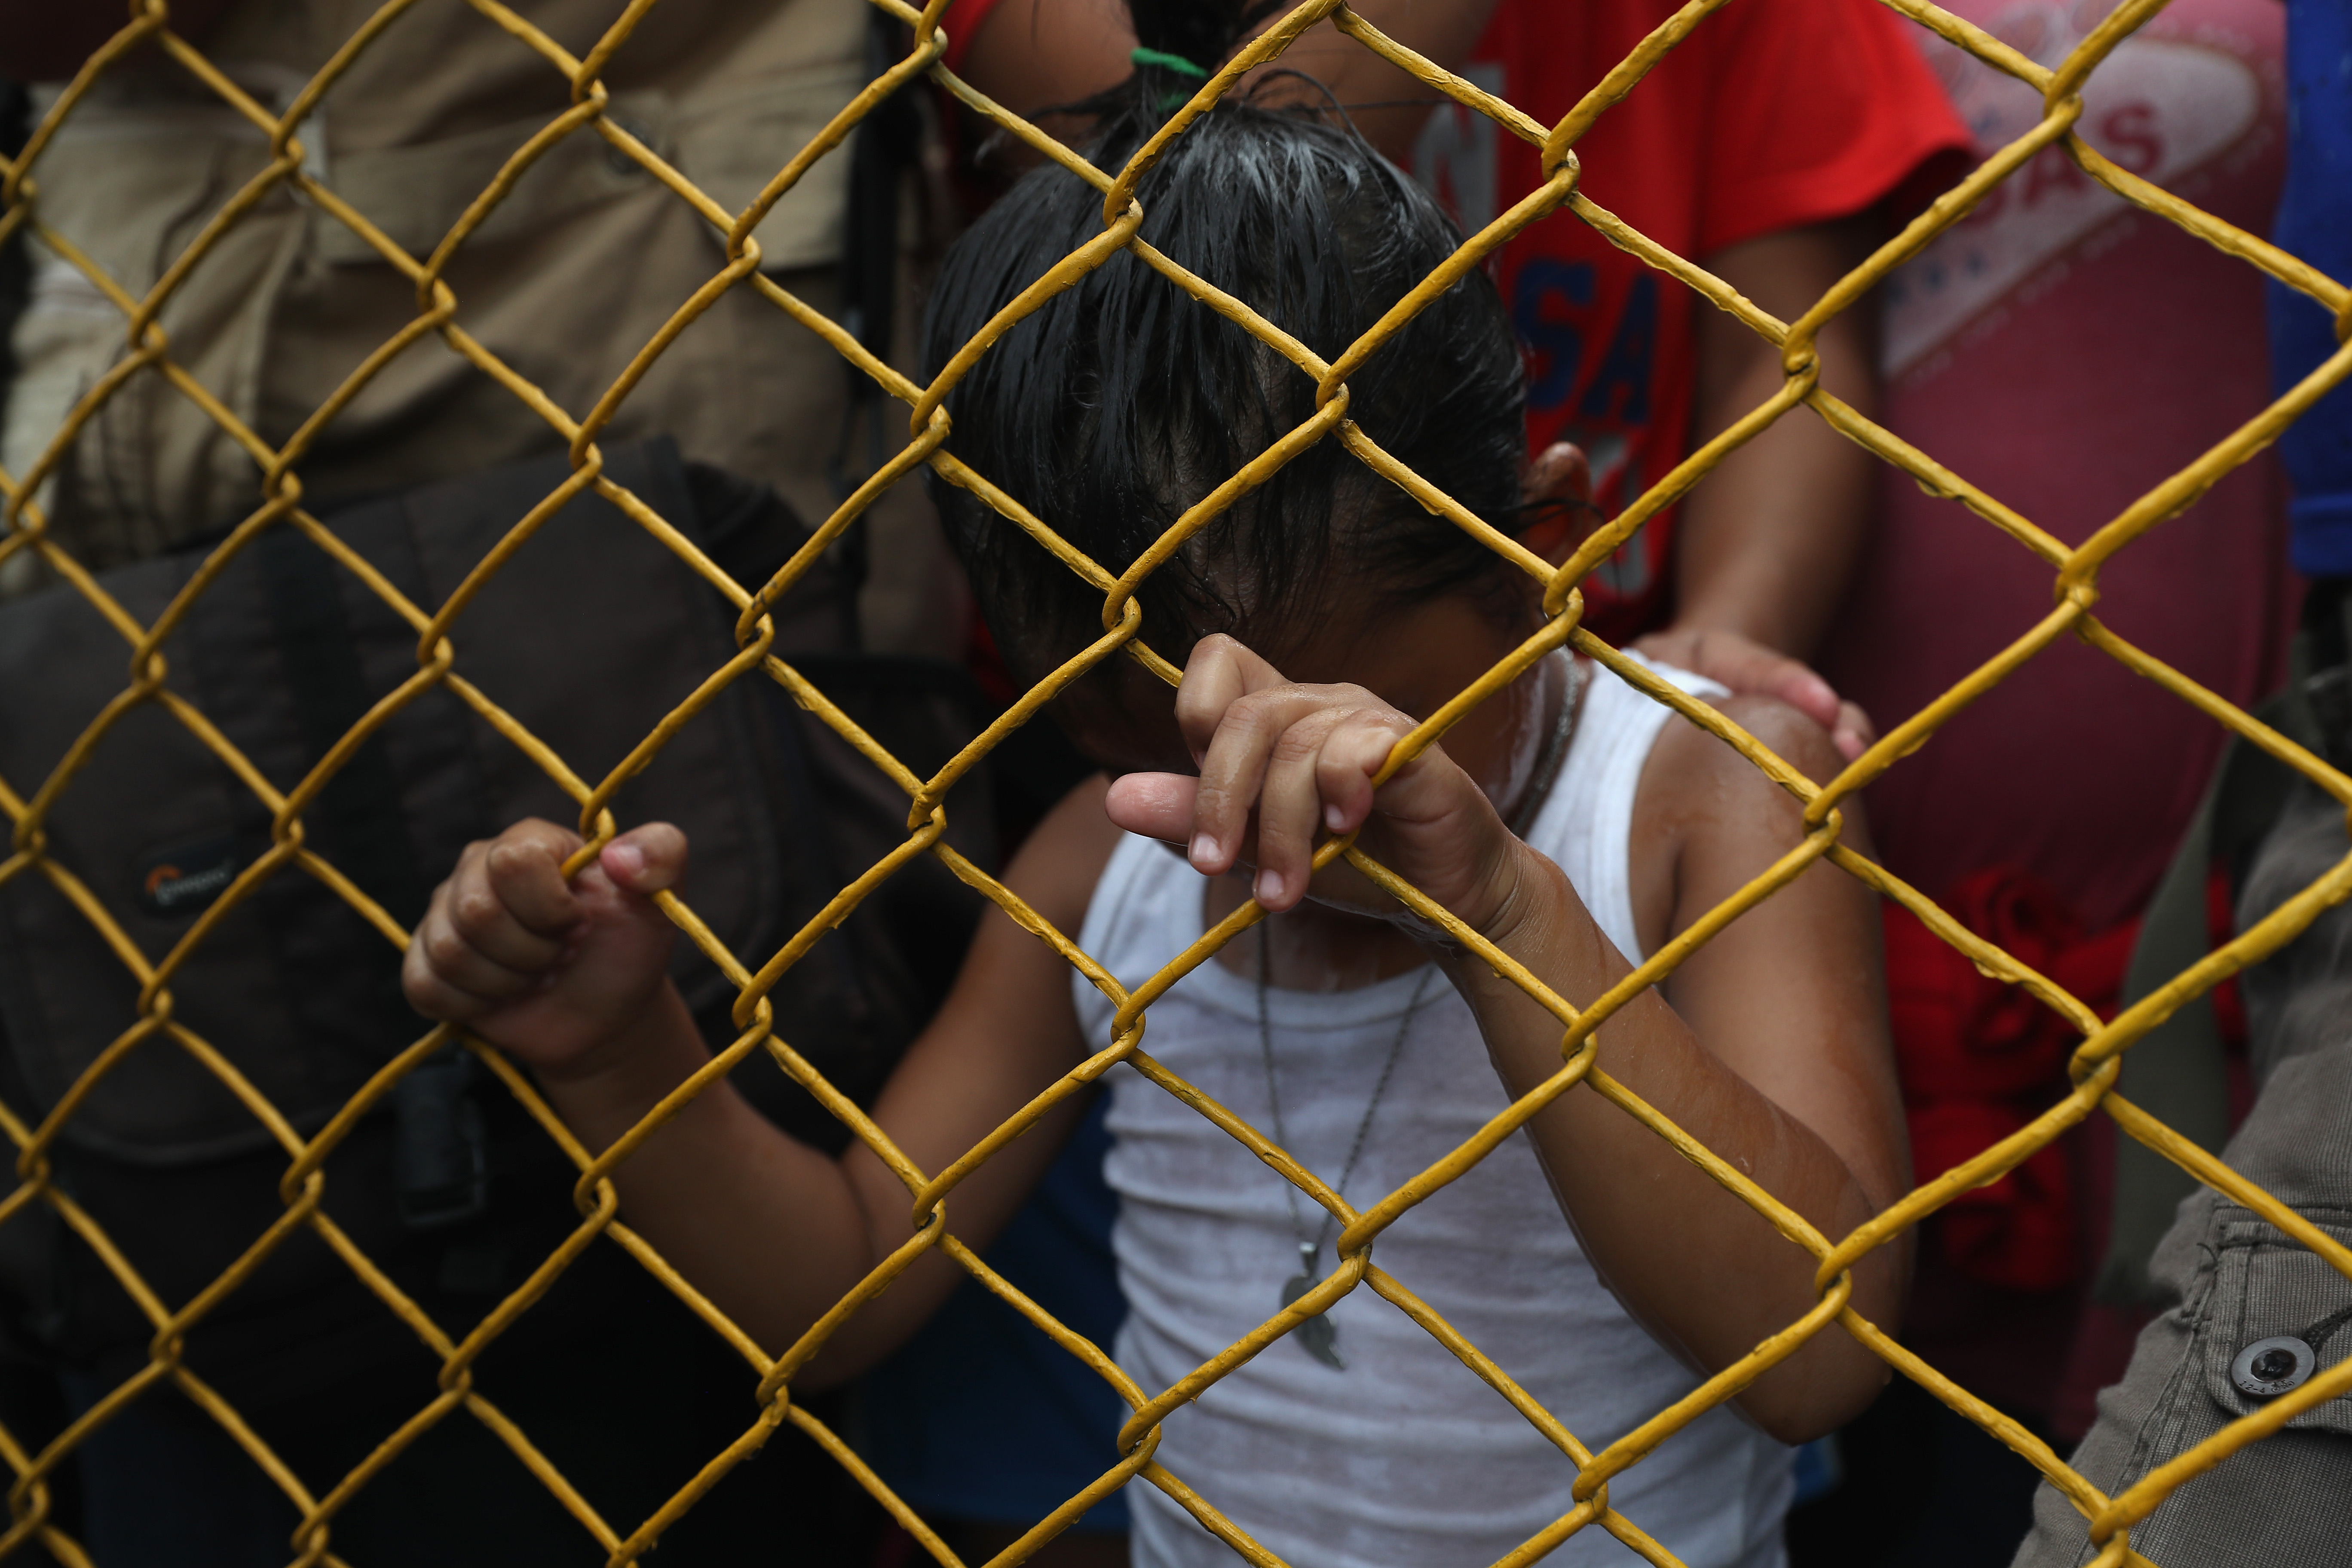 A young member of the immigrant caravan clutches a fence separating Guatemala from Mexico. (Photo by John Moore/Getty Images)